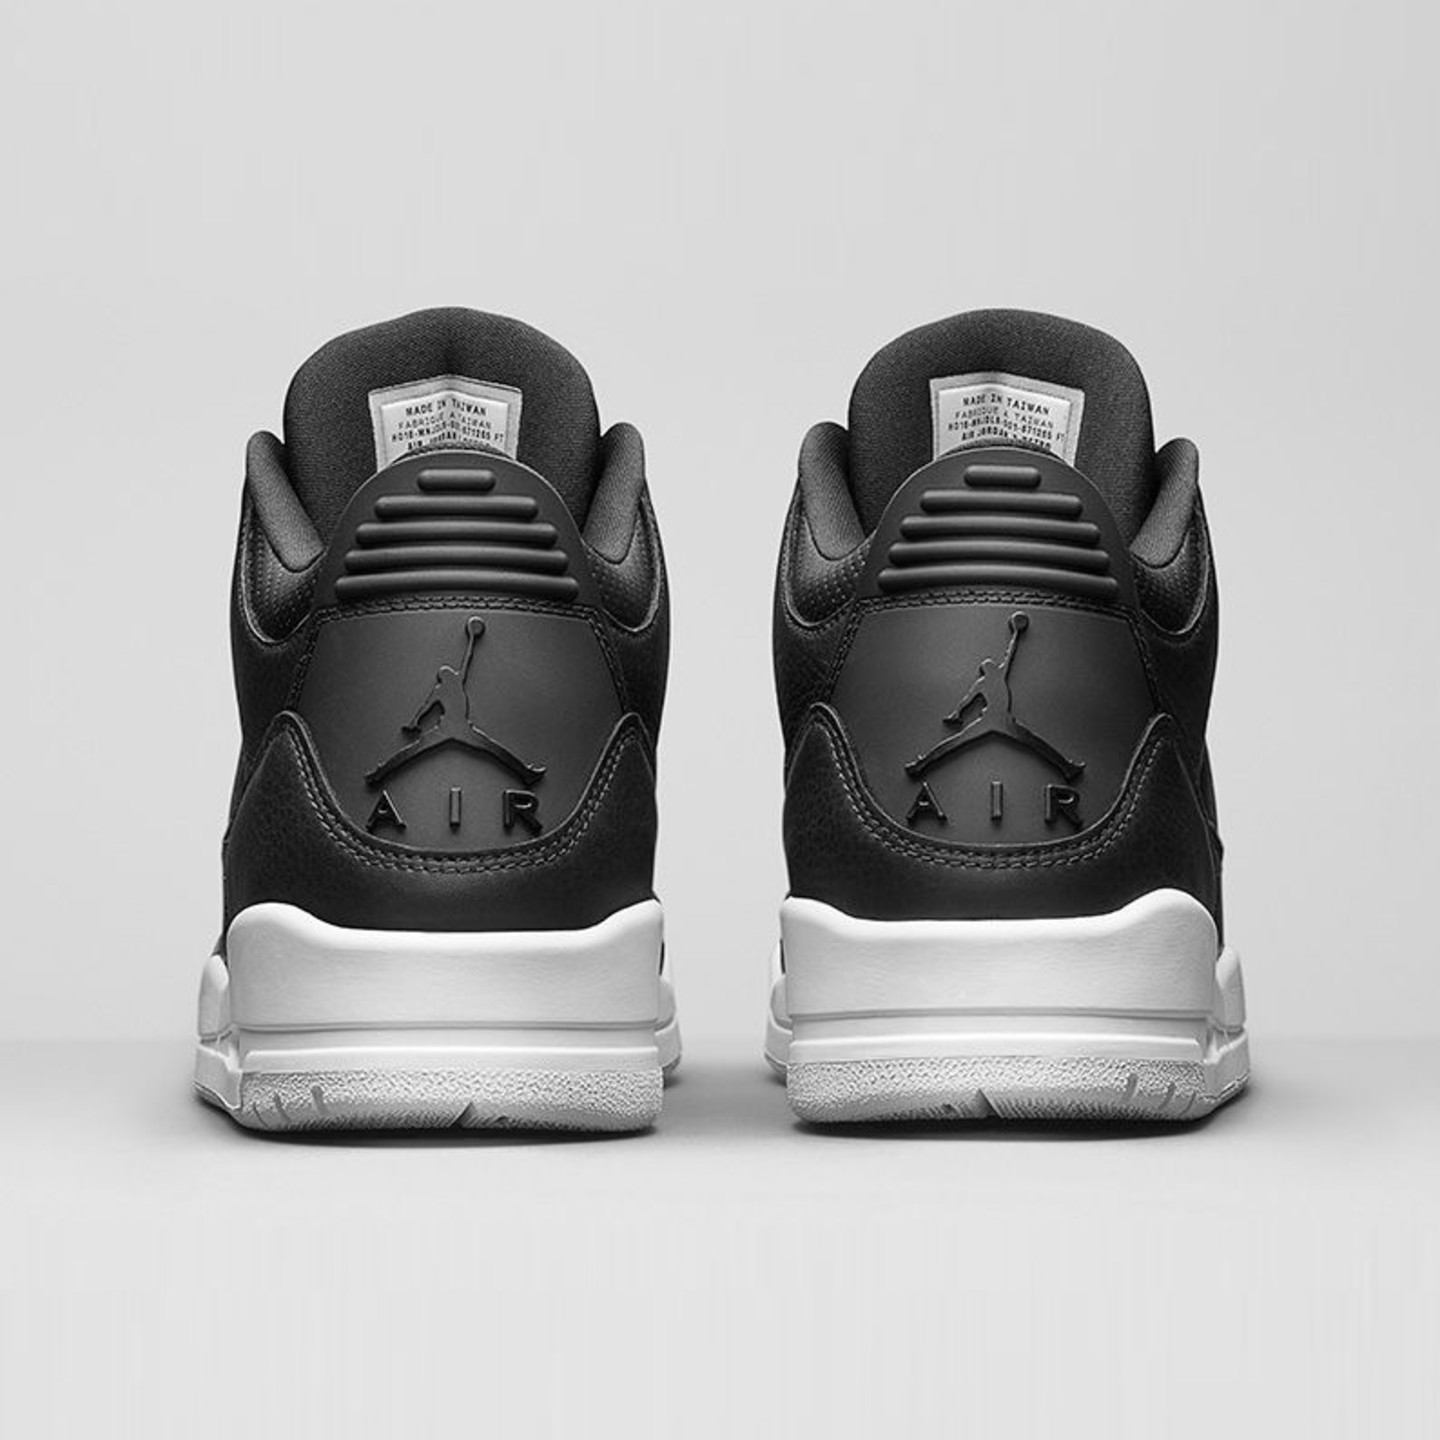 Jordan Air Jordan 3 Retro BG 'Cyber Monday' Black / White 398614-020-40